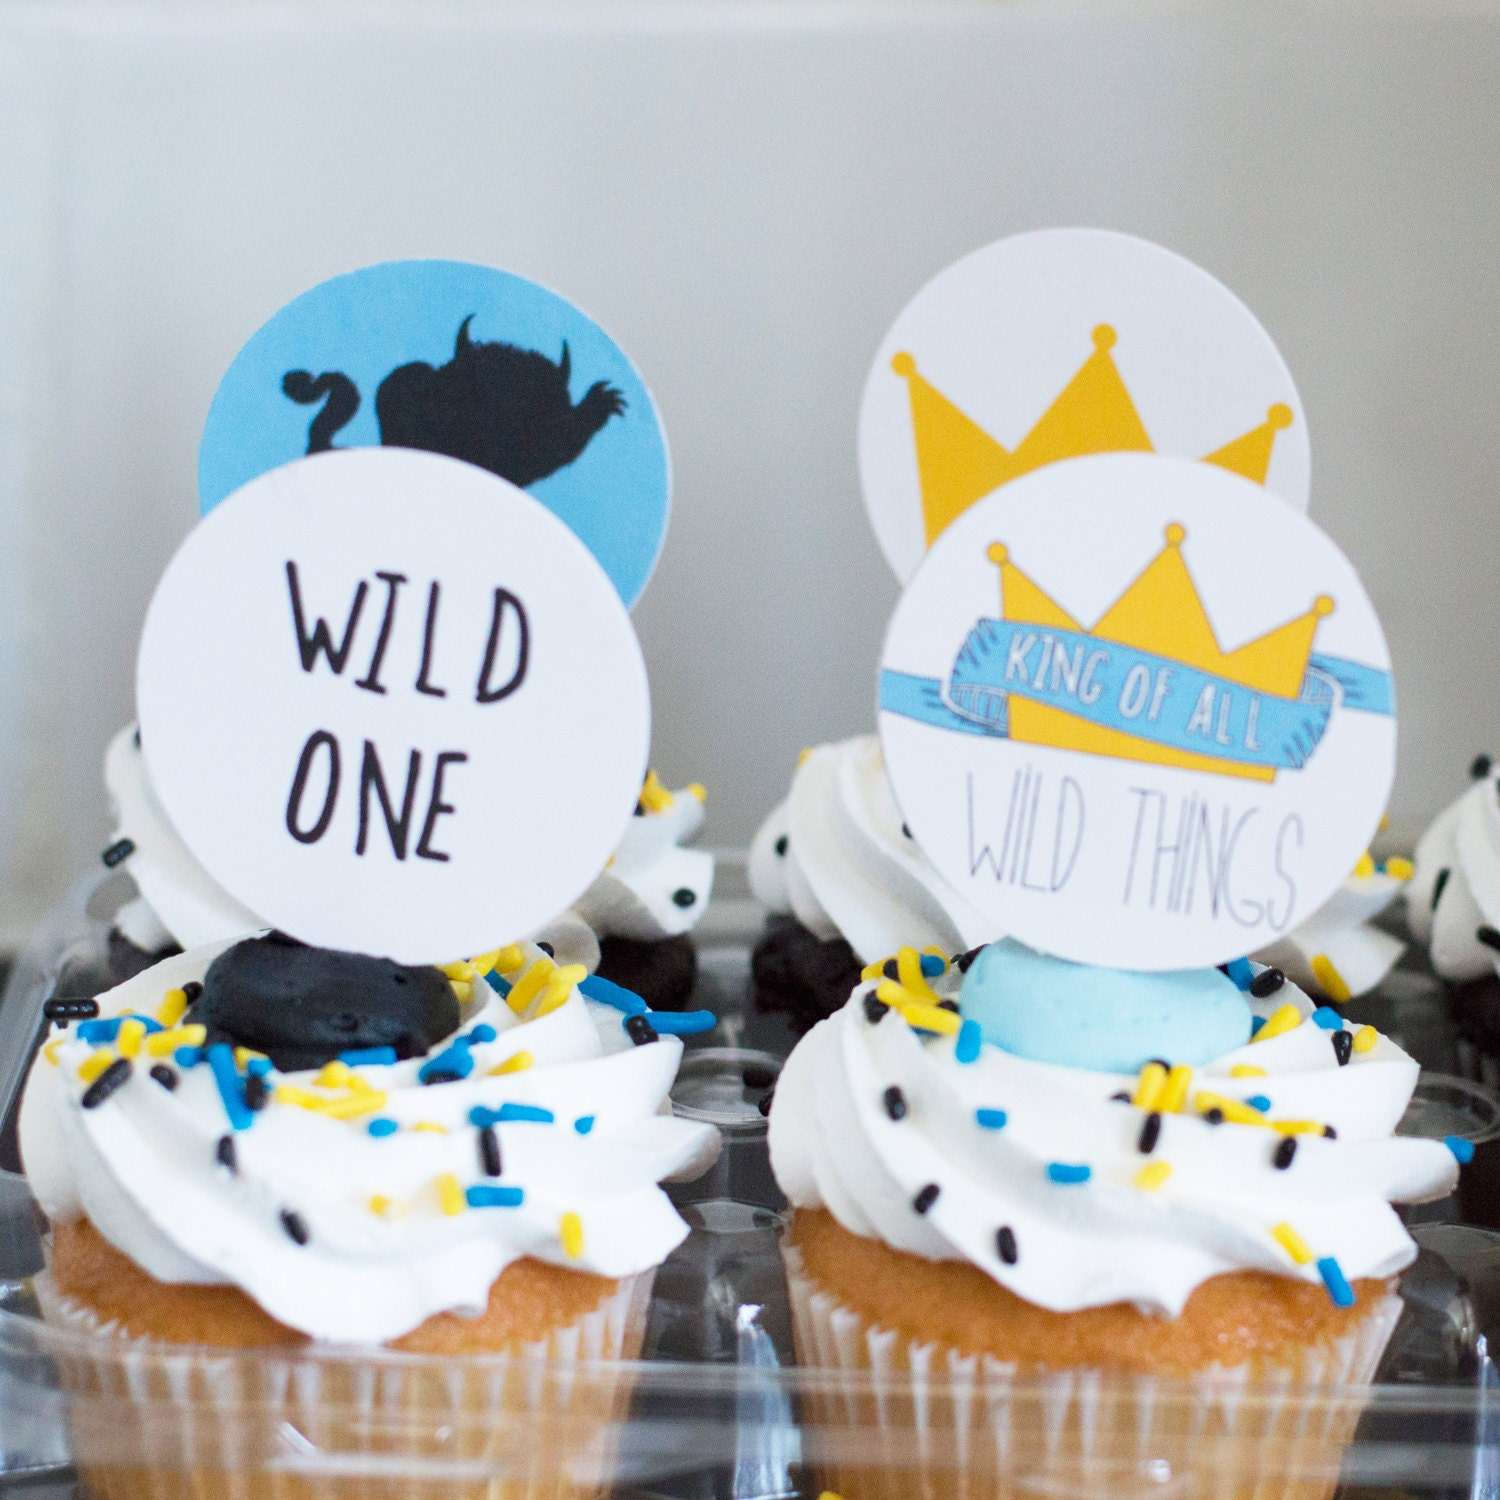 Cupcake Topper Where The Wild Things Are Theme